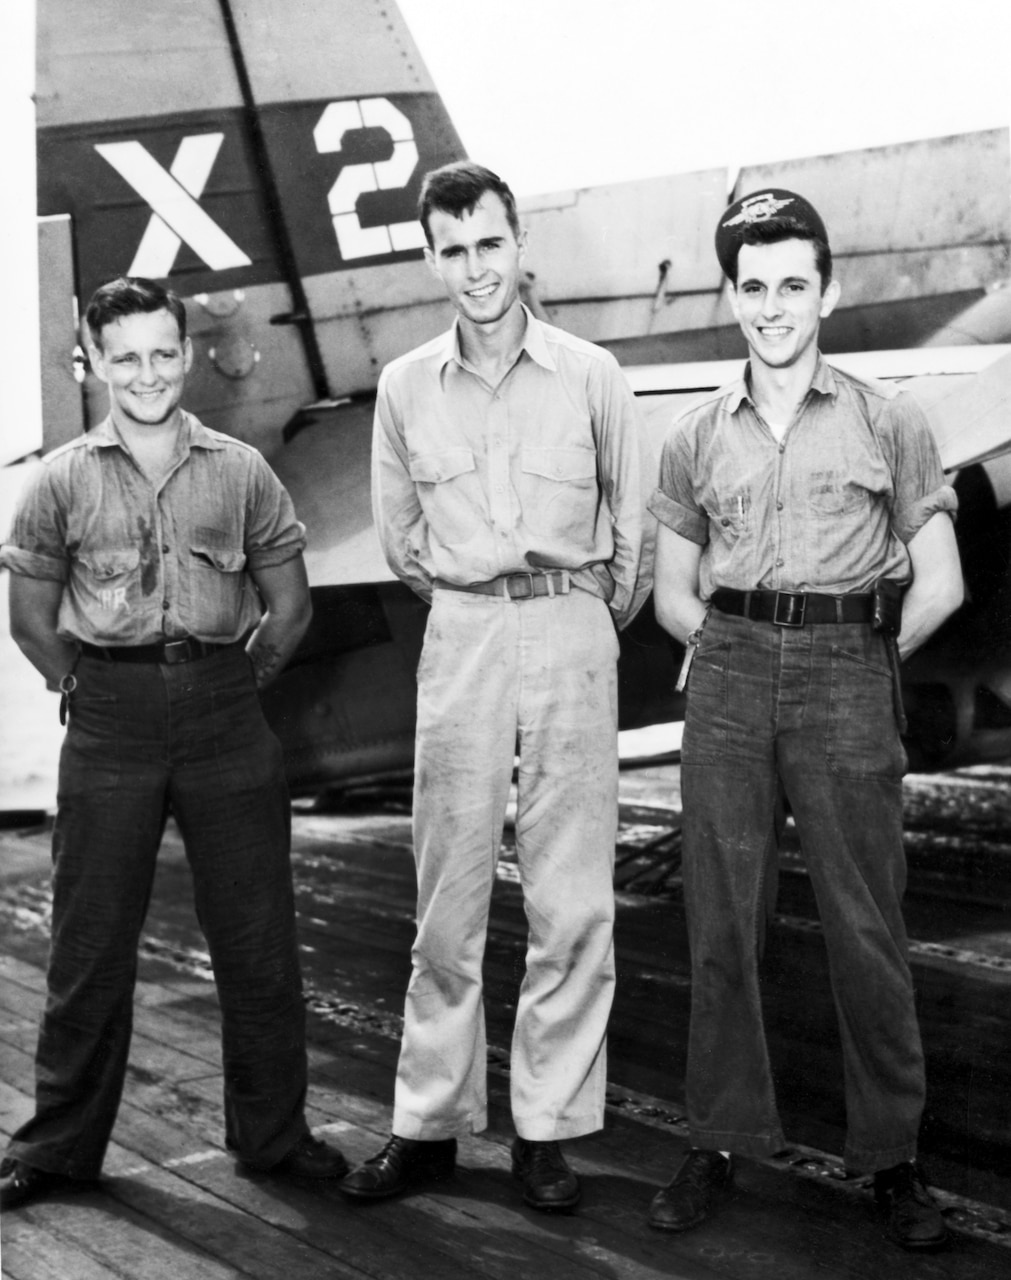 Three WWII-era naval aviators stand in front of their aircraft.